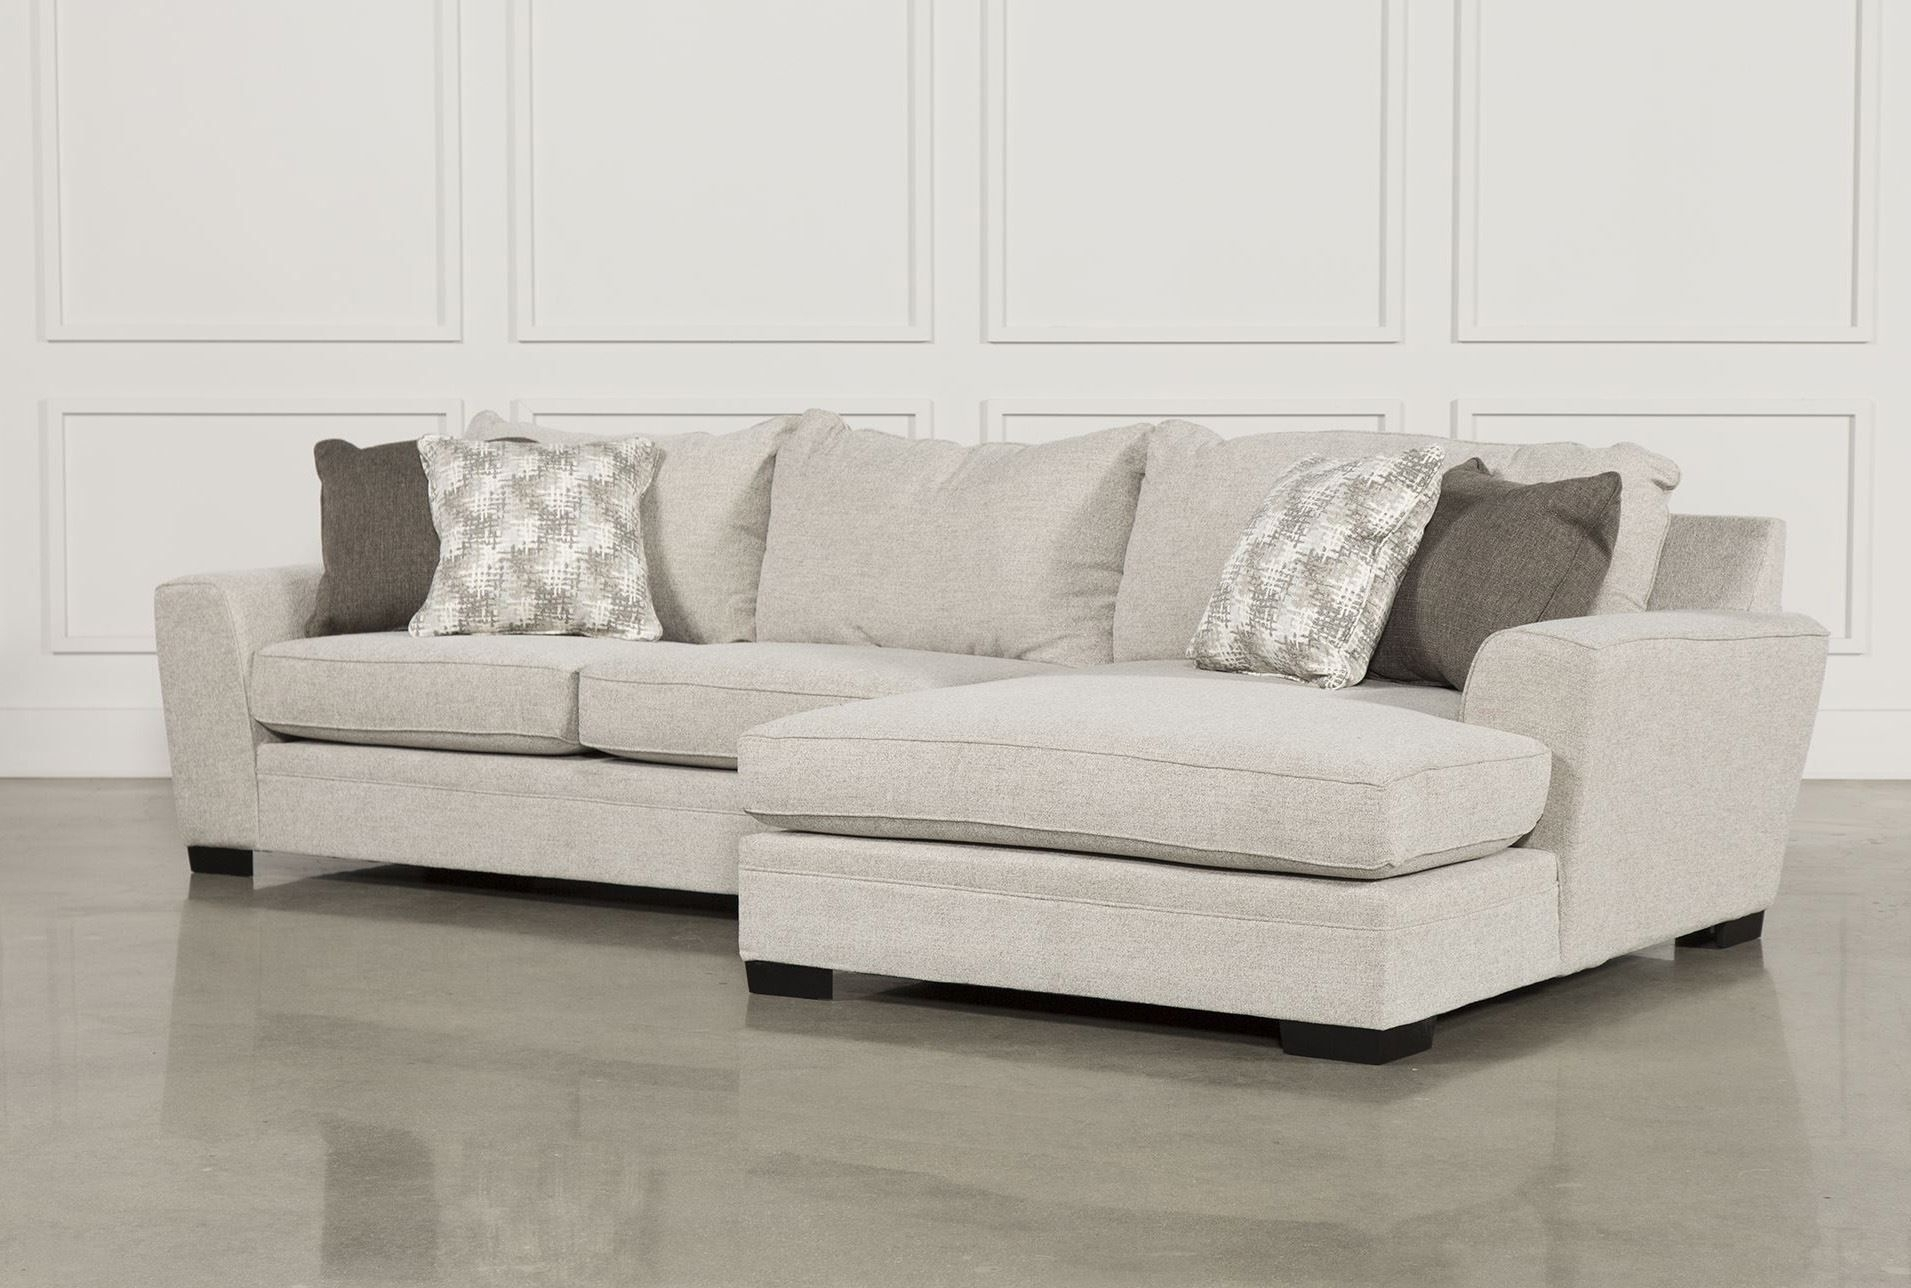 Delano 2 Piece Sectional W/raf Oversized Chaise | Pinterest | Living Within Aurora 2 Piece Sectionals (View 18 of 25)